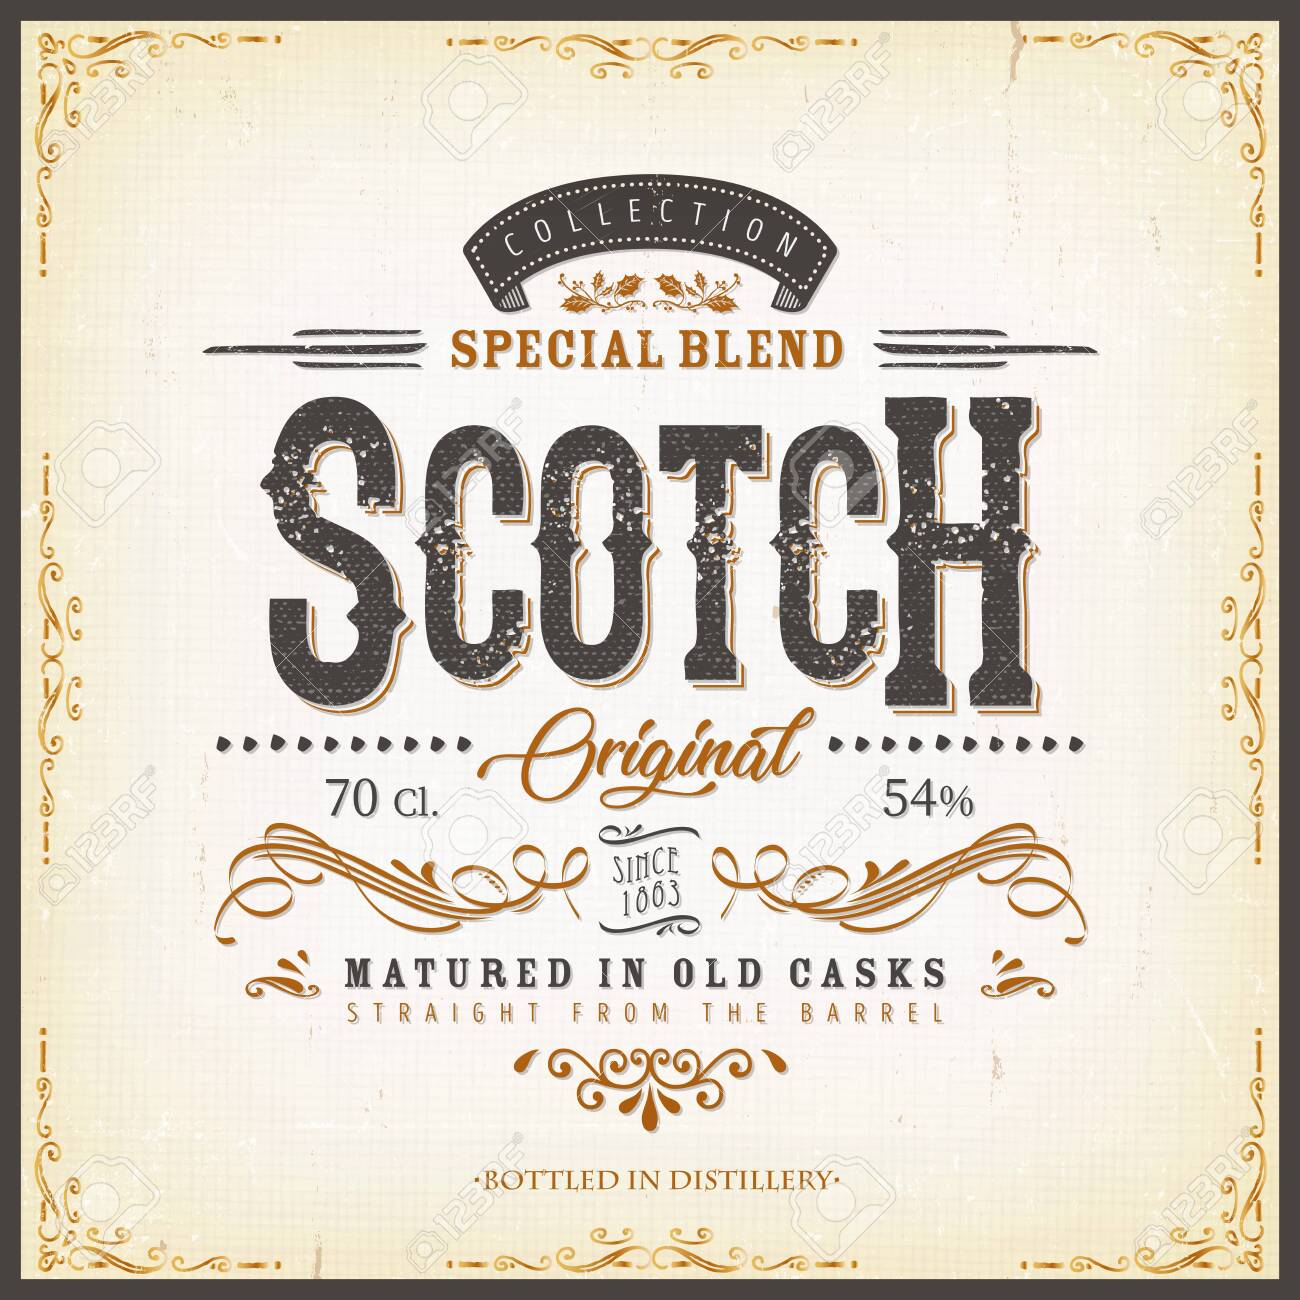 Illustration of a vintage design elegant whisky label, with crafted letterring, specific product mentions, textures and celtic patterns, on blue and gold background - 136127492